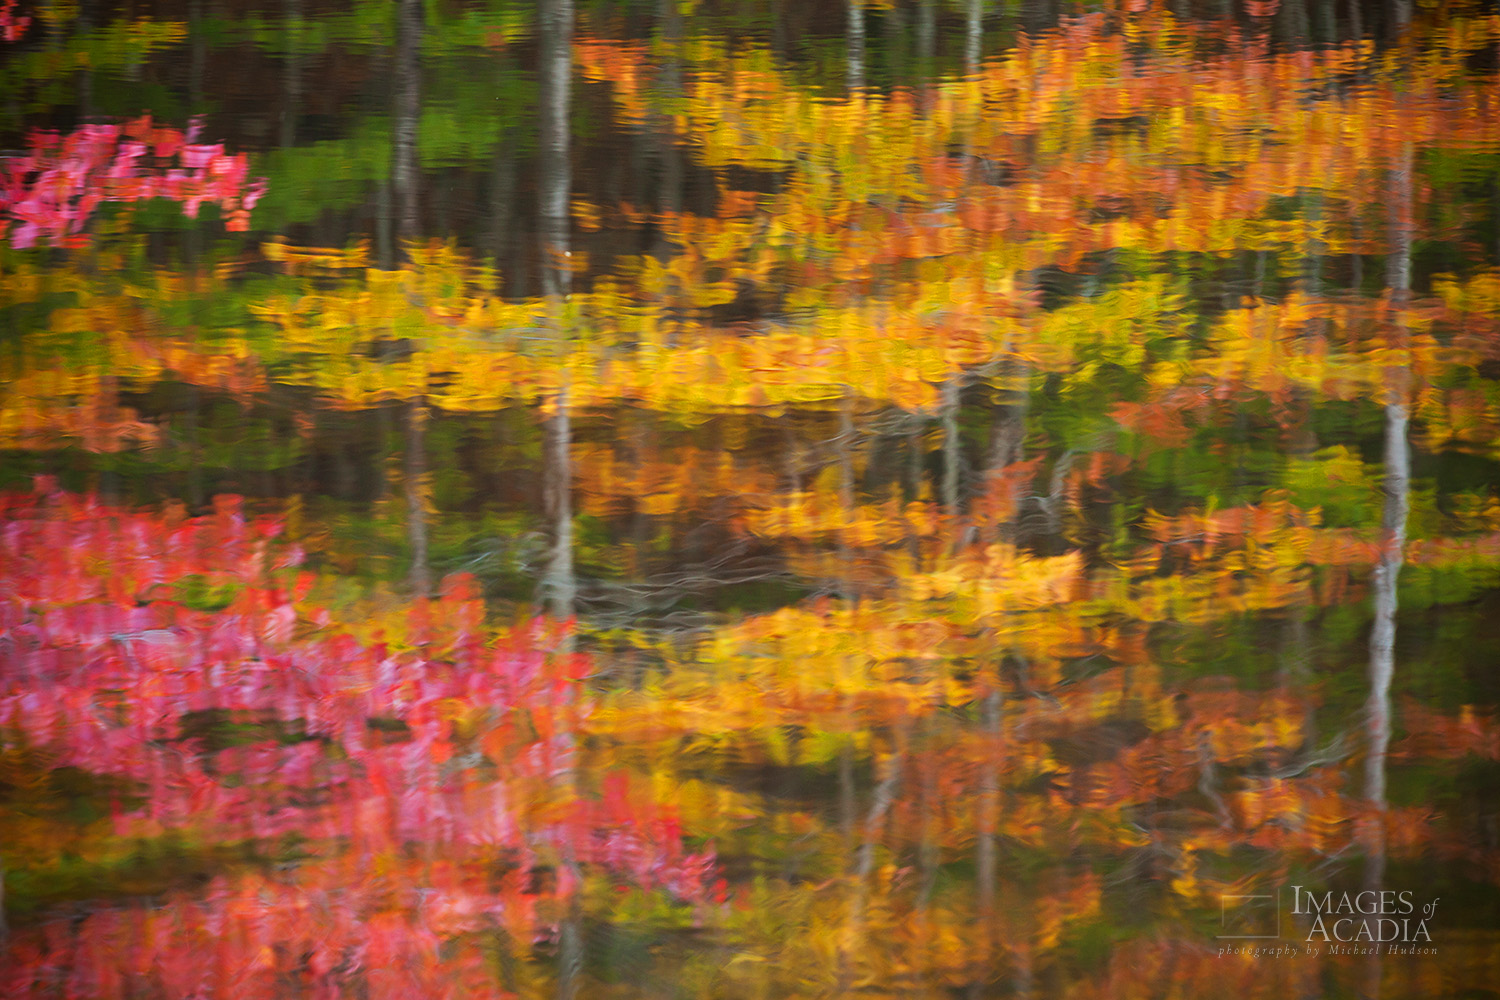 Reflections in small pond, Canon Brook Trail